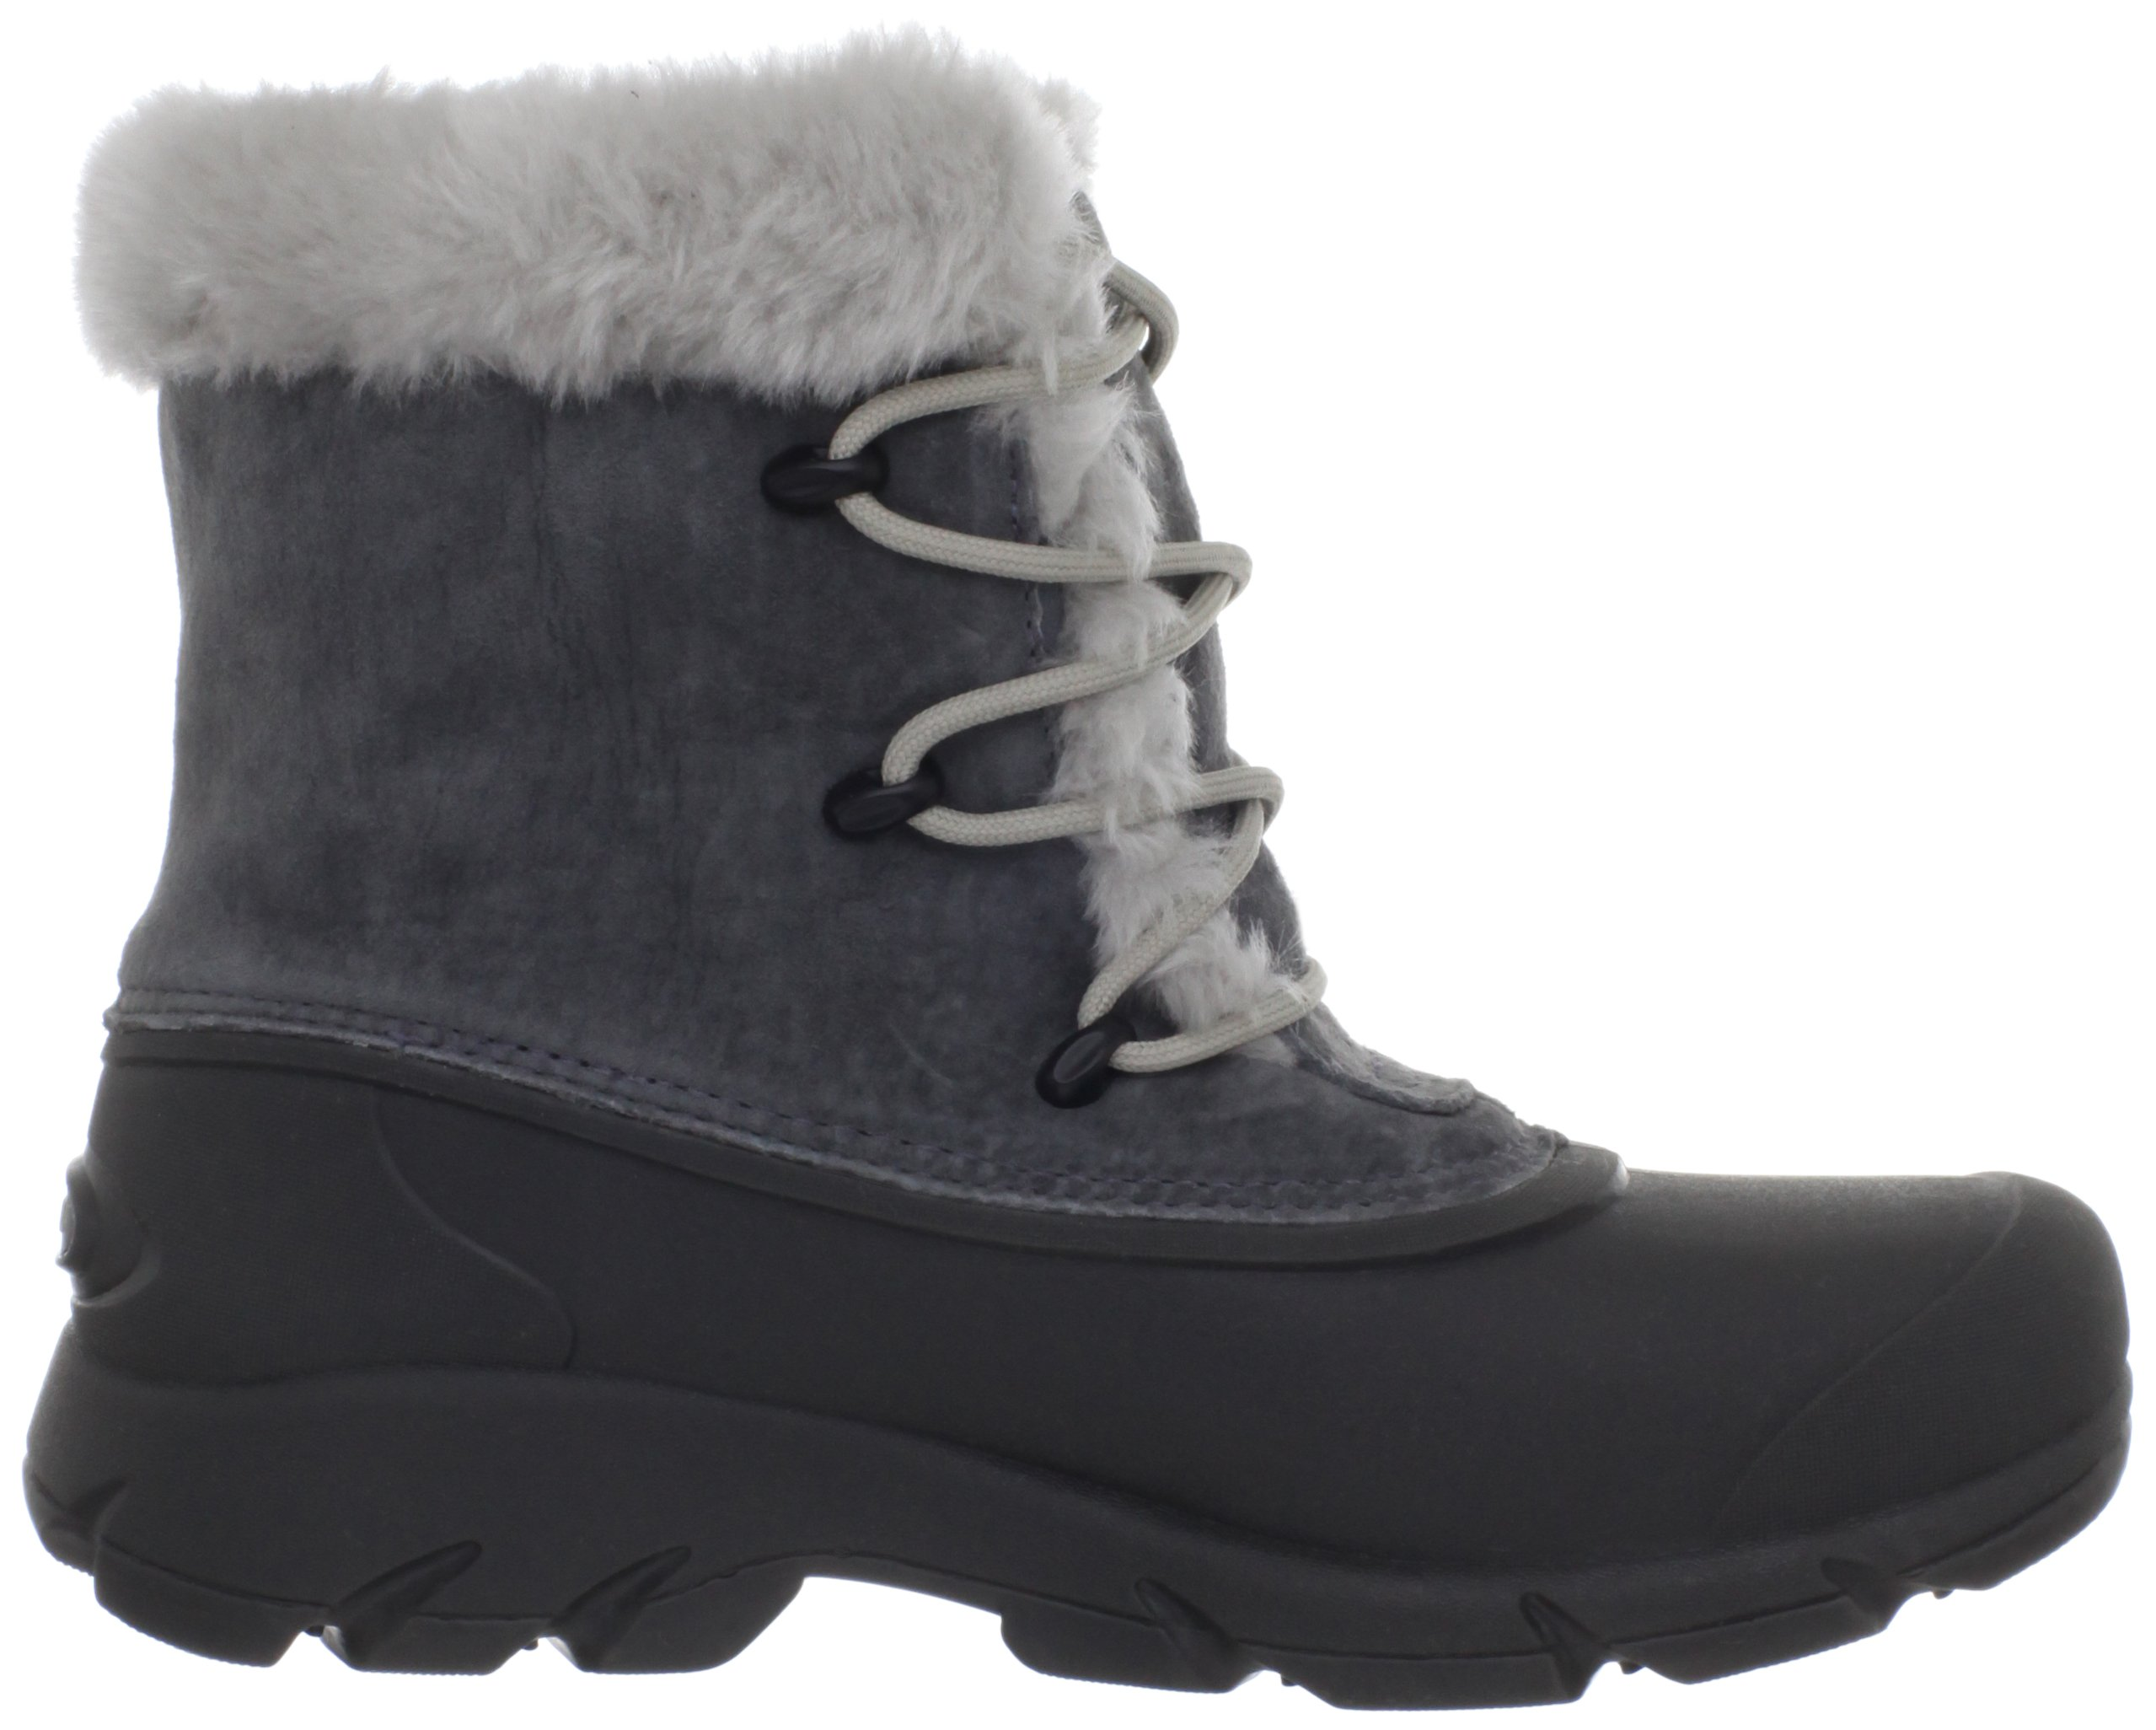 Sorel Women's Snow Angel Lace Boot,Charcoal,8 M US by SOREL (Image #6)